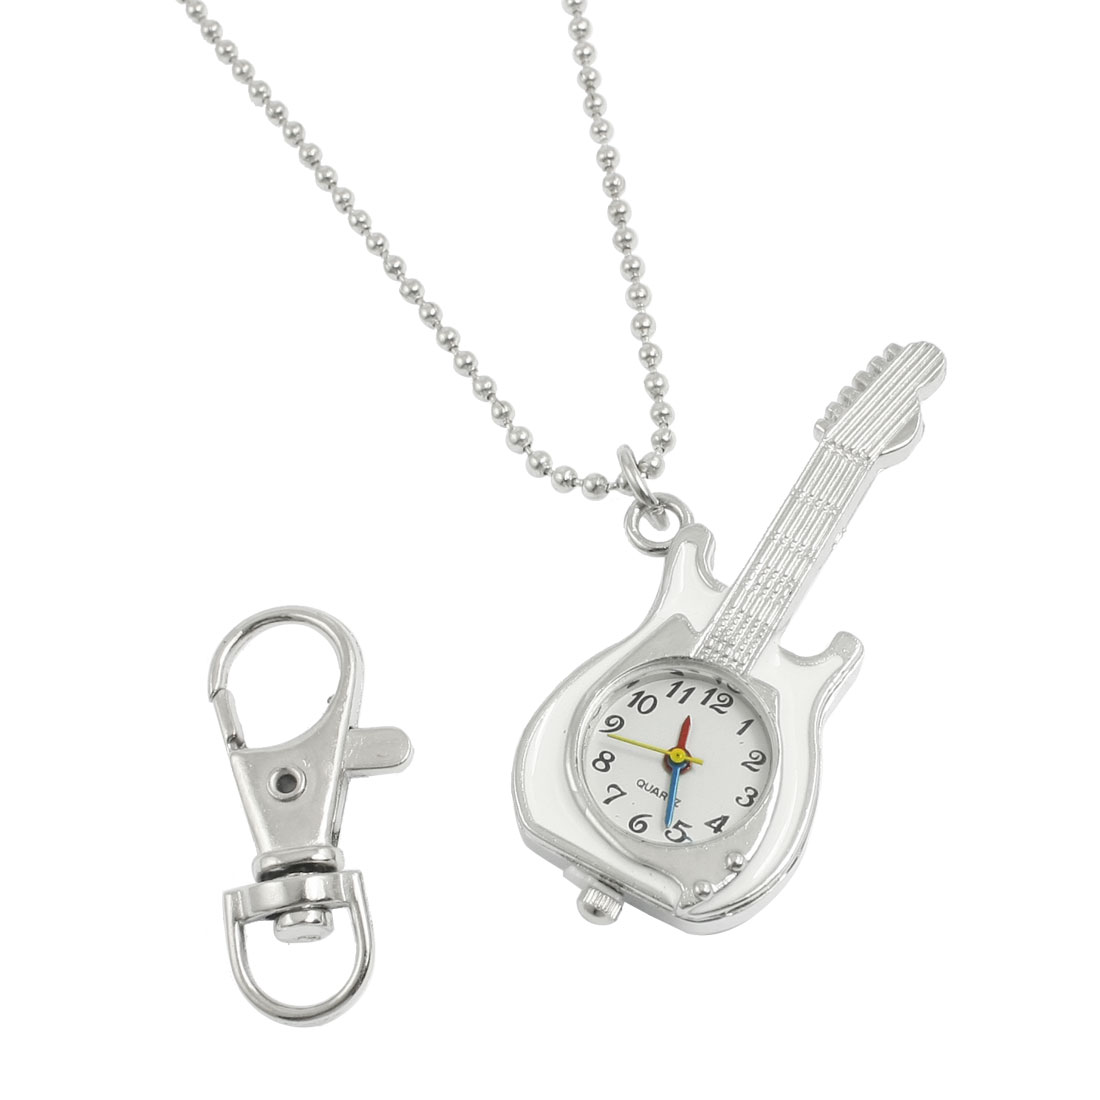 Silver Tone White Guitar Shape Watch Pendant Necklace w Lobster Clasp